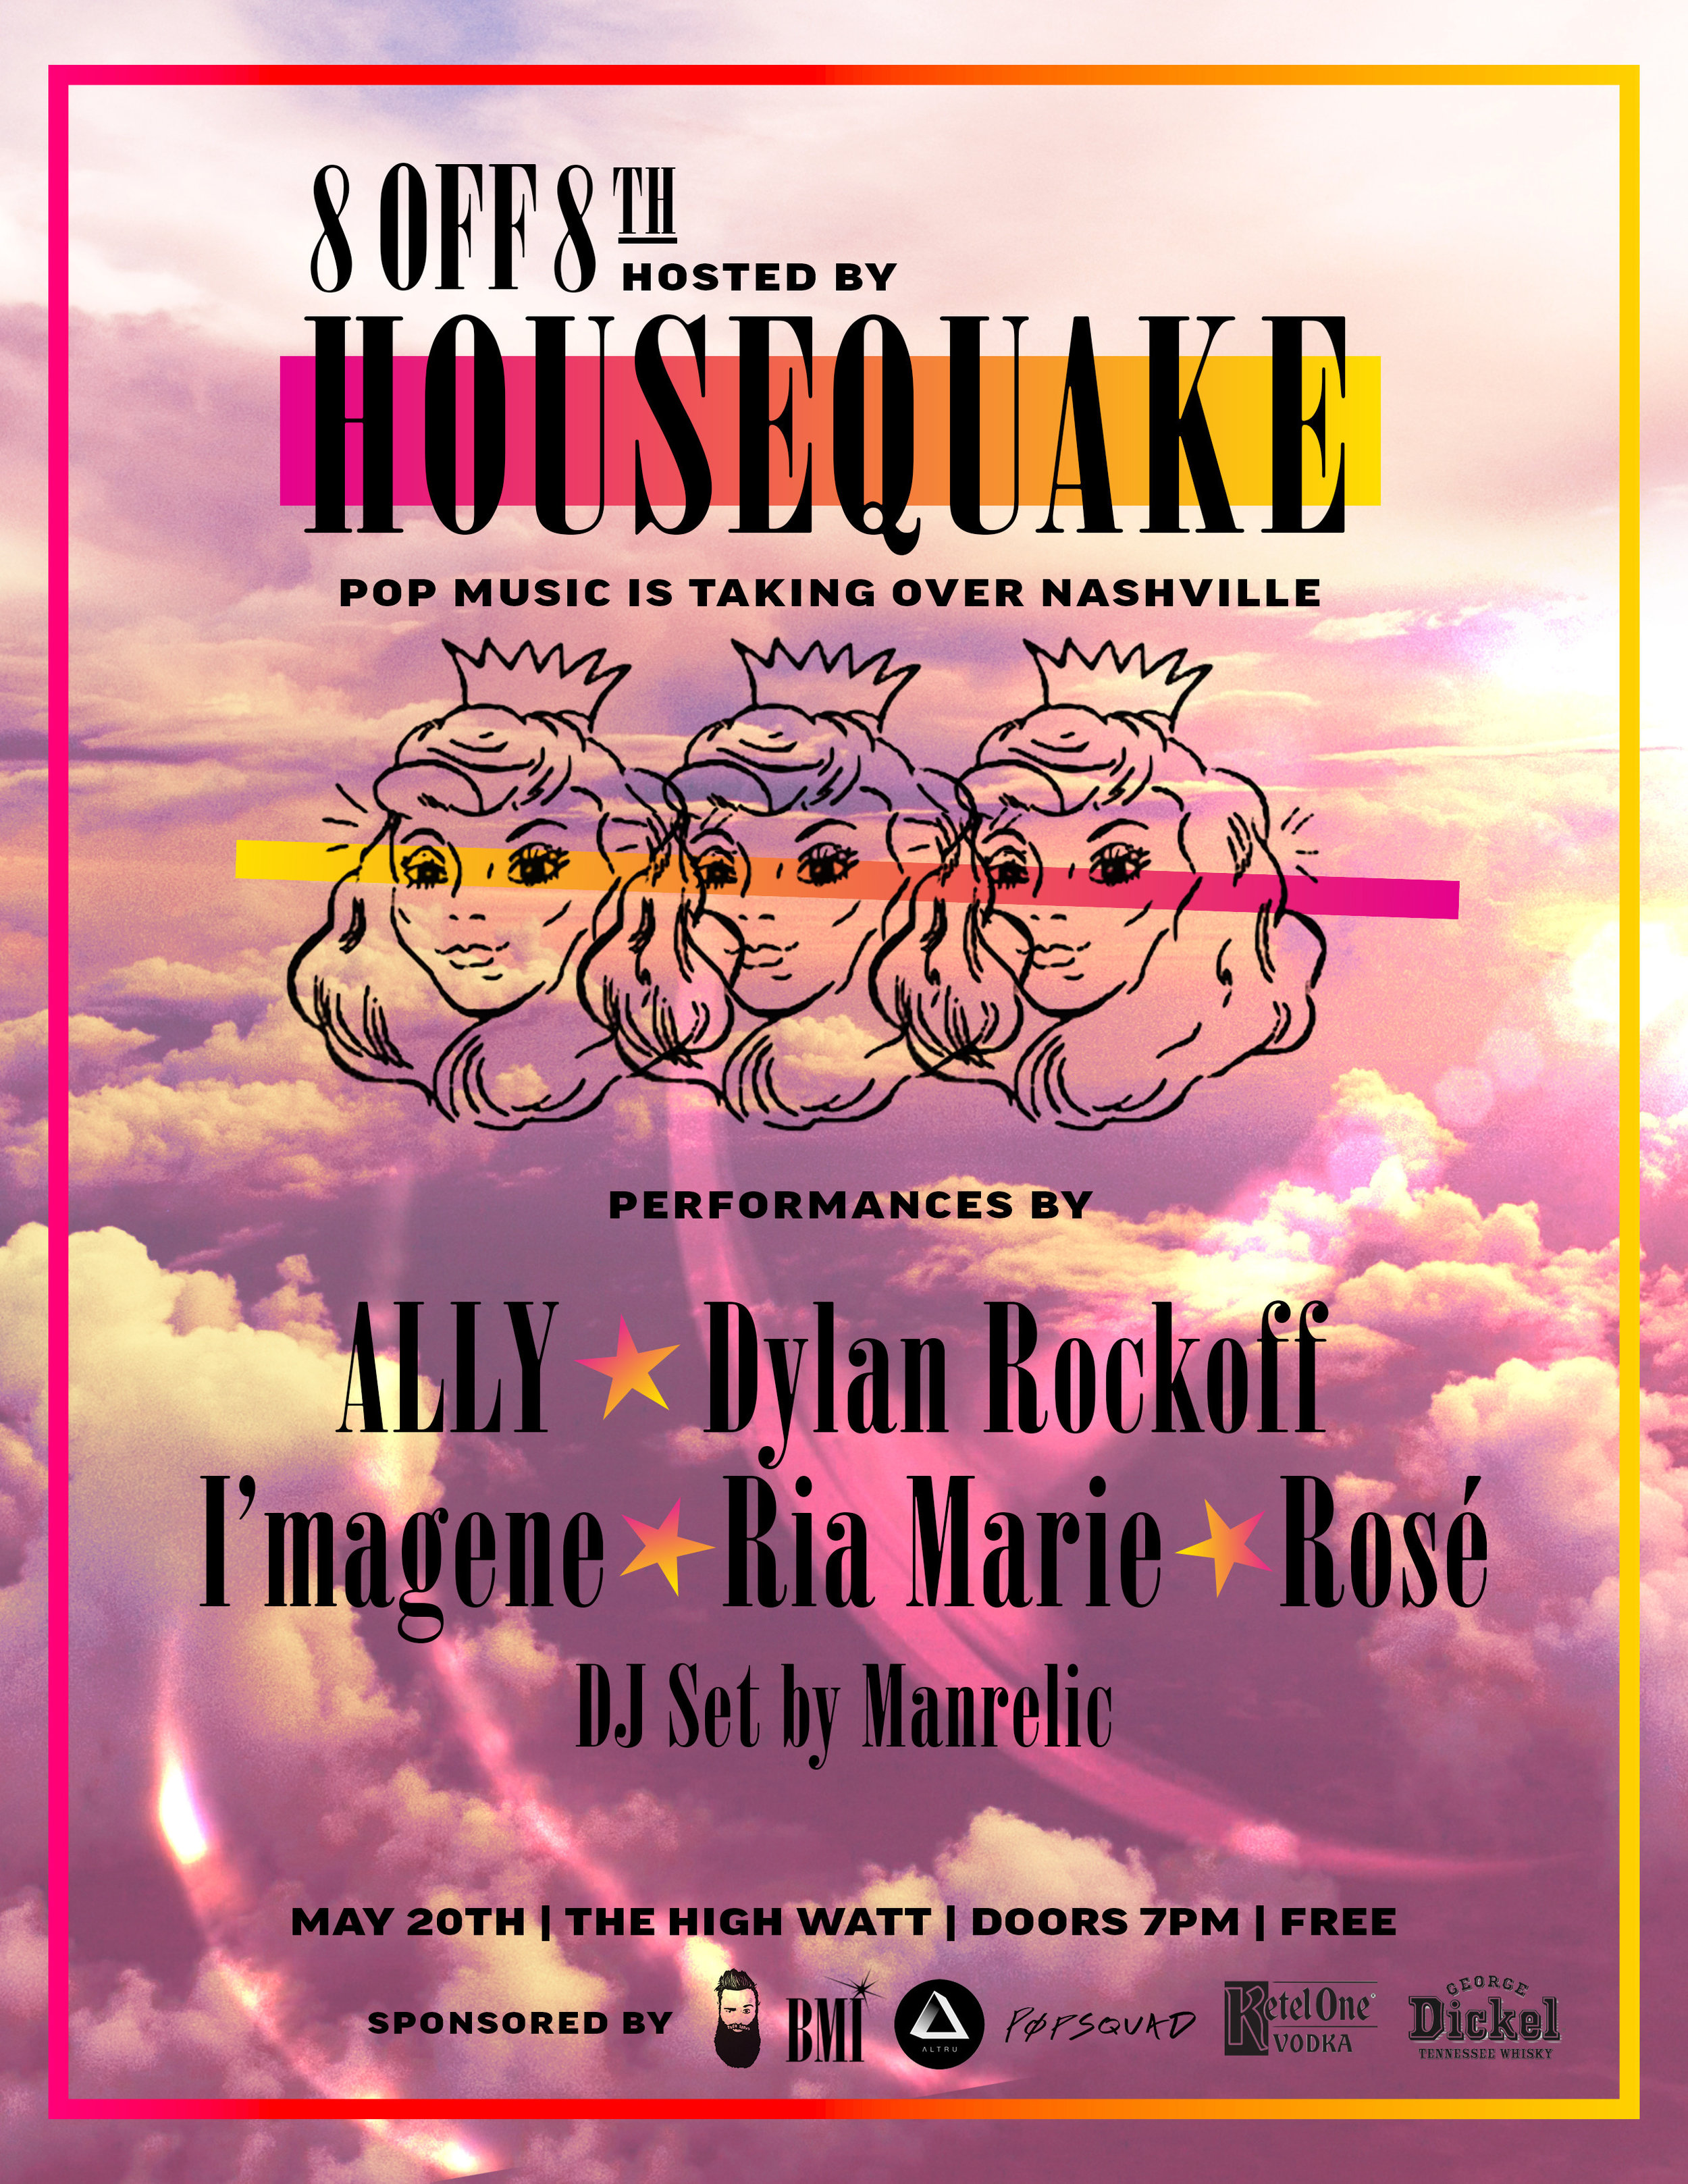 housequake-MAY_Poster-1.jpeg